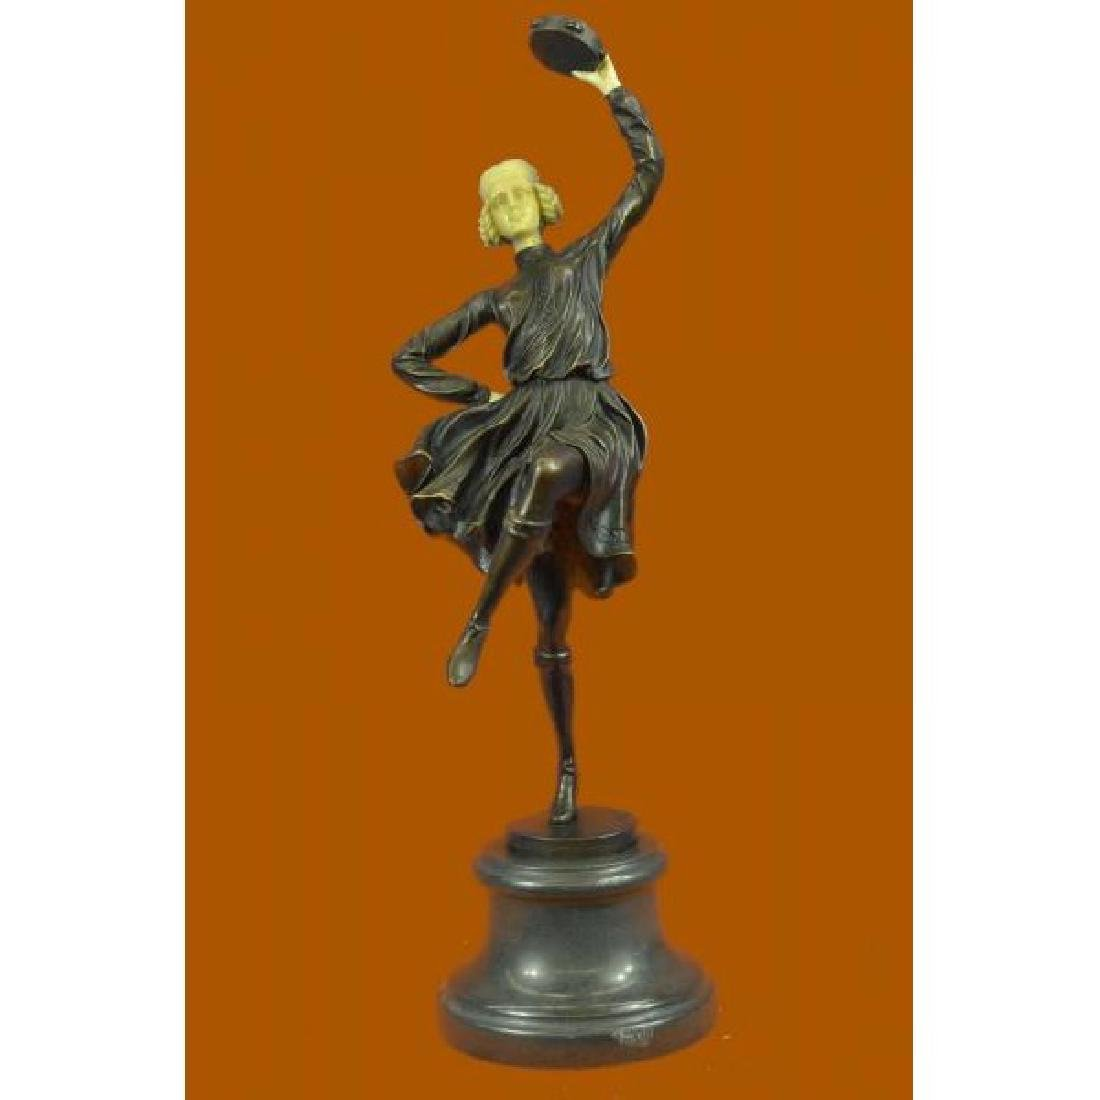 Hot Cast Bronze Sculpture of a Tambourine Dancer By